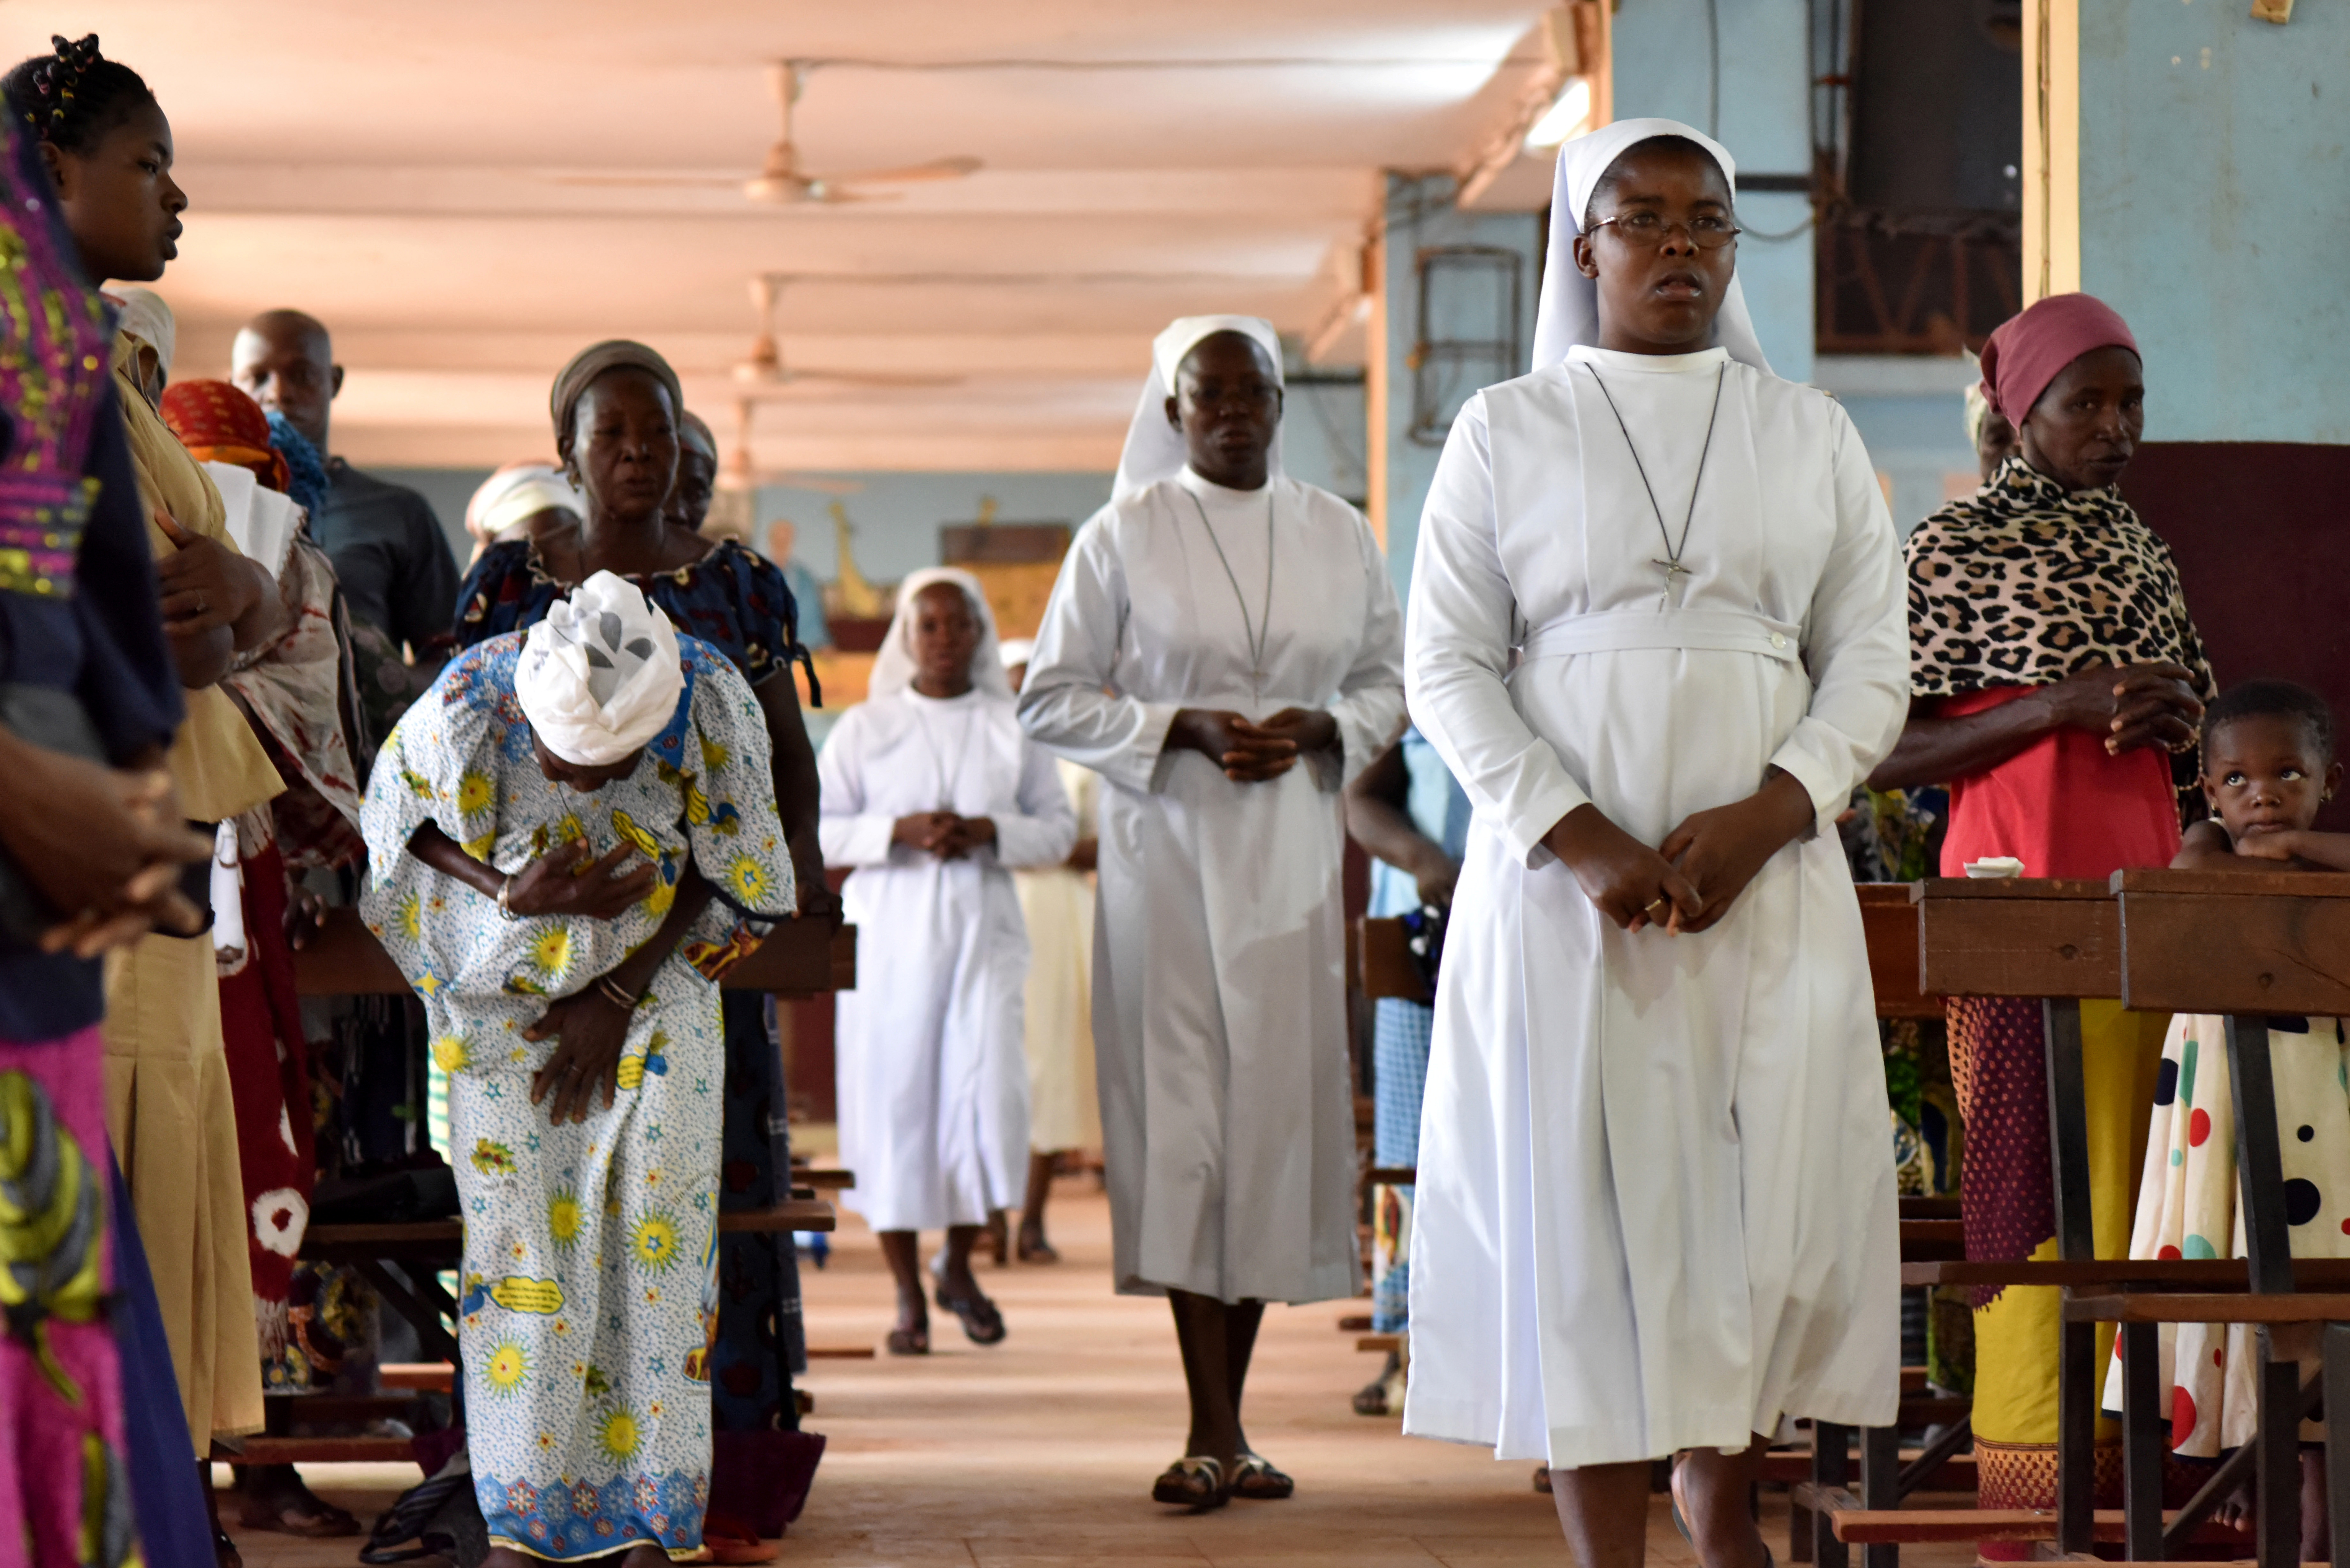 Catholic nuns attend a church service at the cathedral of Our Lady of Kaya in the city of Kaya, Burkina Faso May 16, 2019. Picture taken May 16, 2019. REUTERS/Anne Mimault